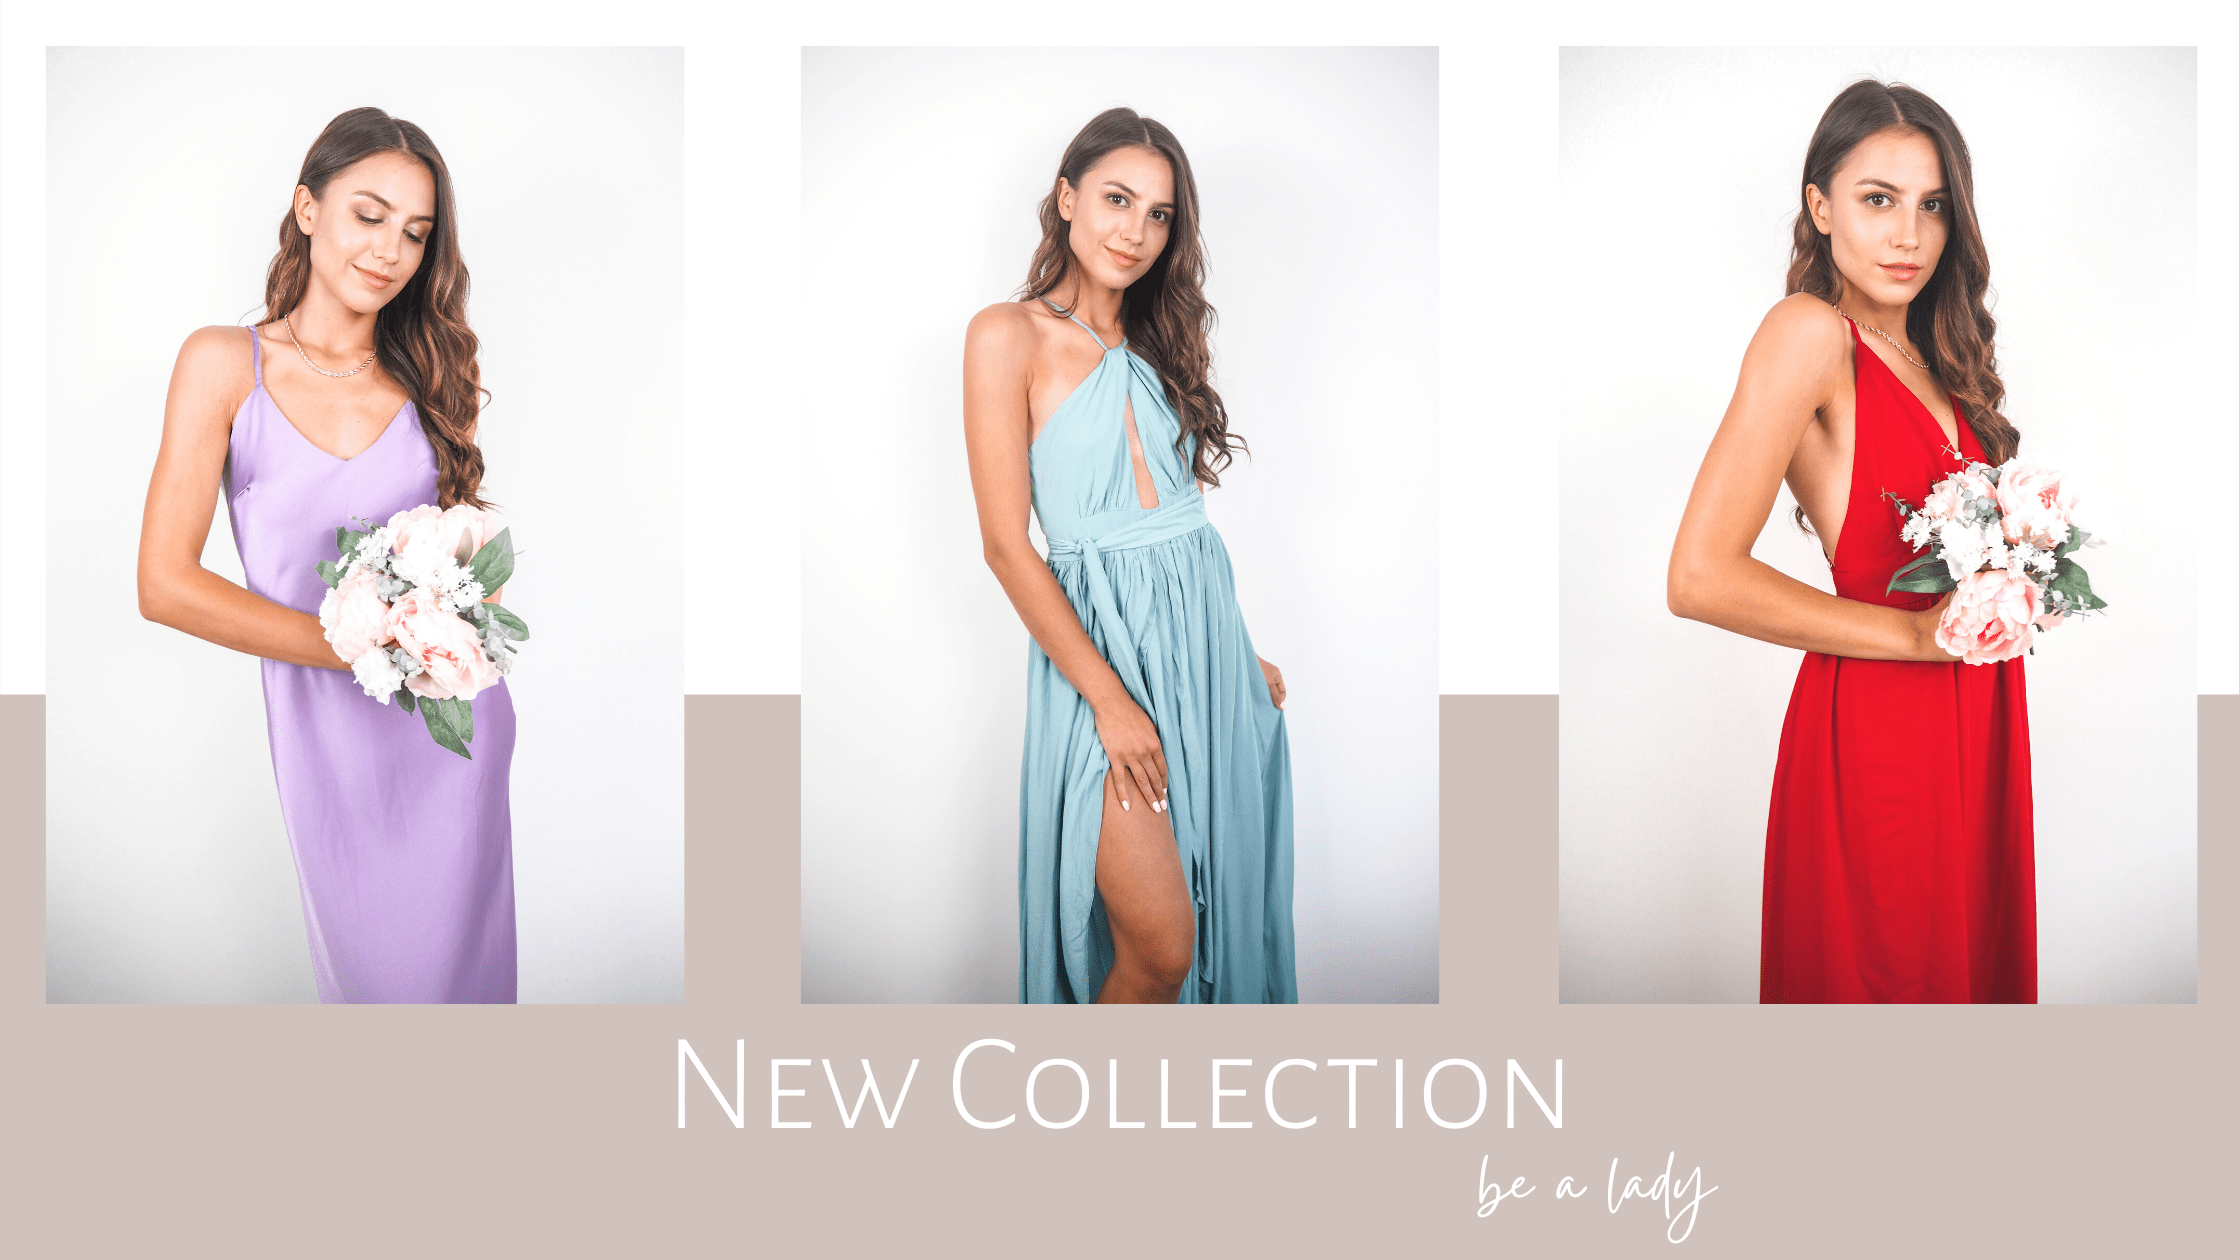 New Summer Collection - be a lady